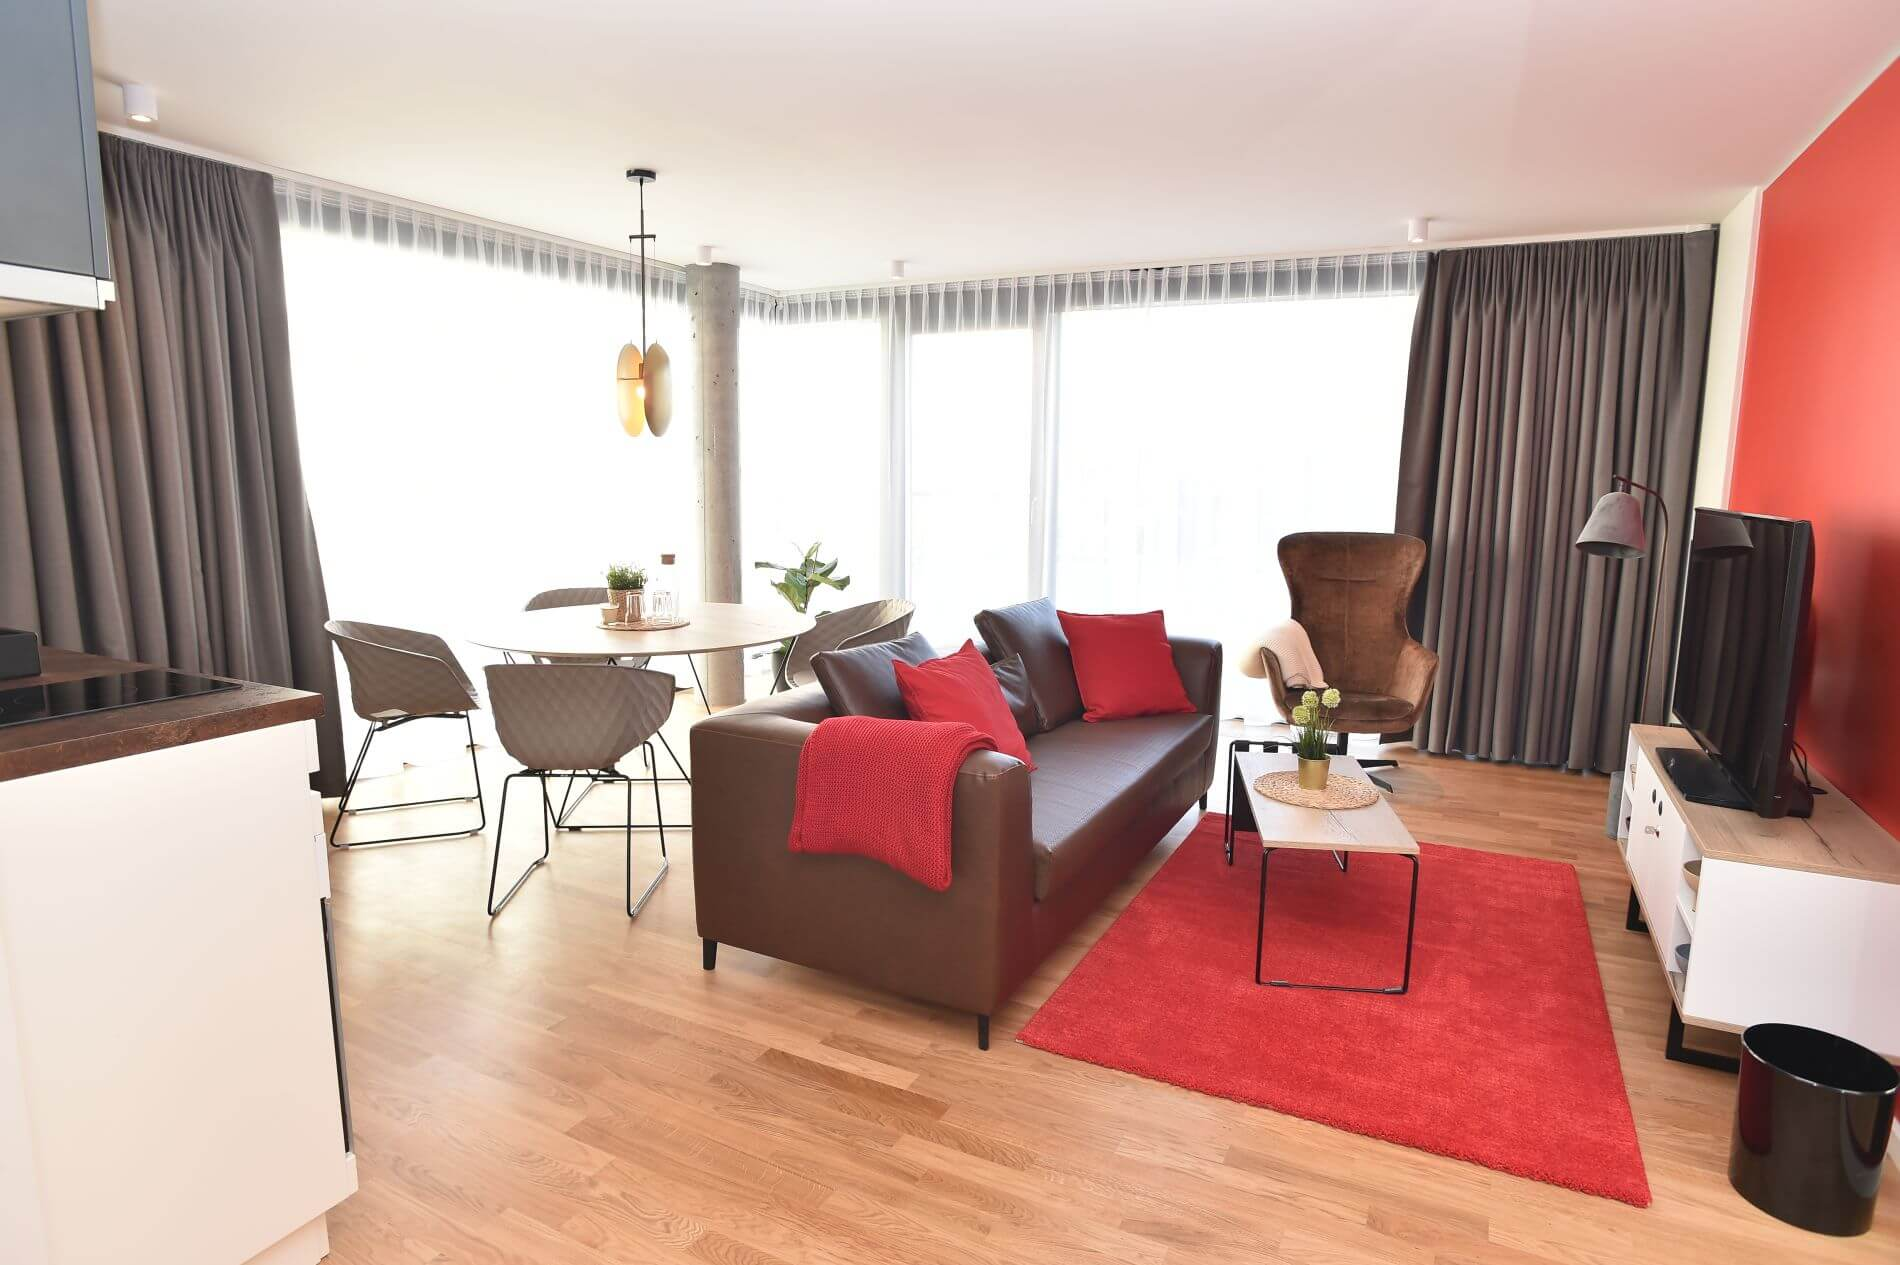 Spacious furnished apartment in Berlin that allows pets